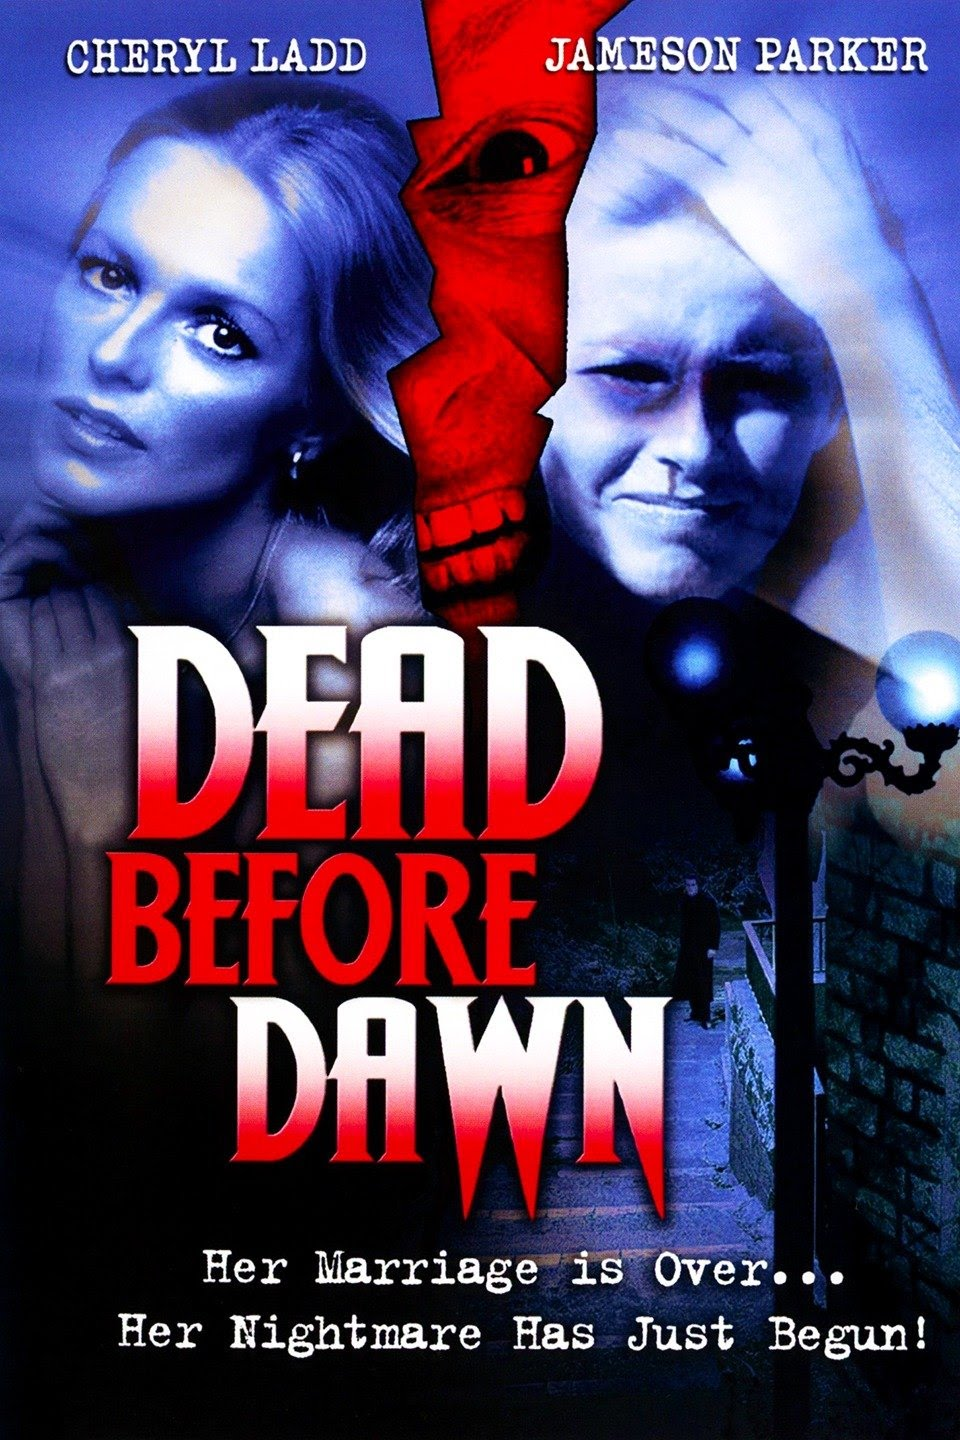 Dead Before Dawn (1993)